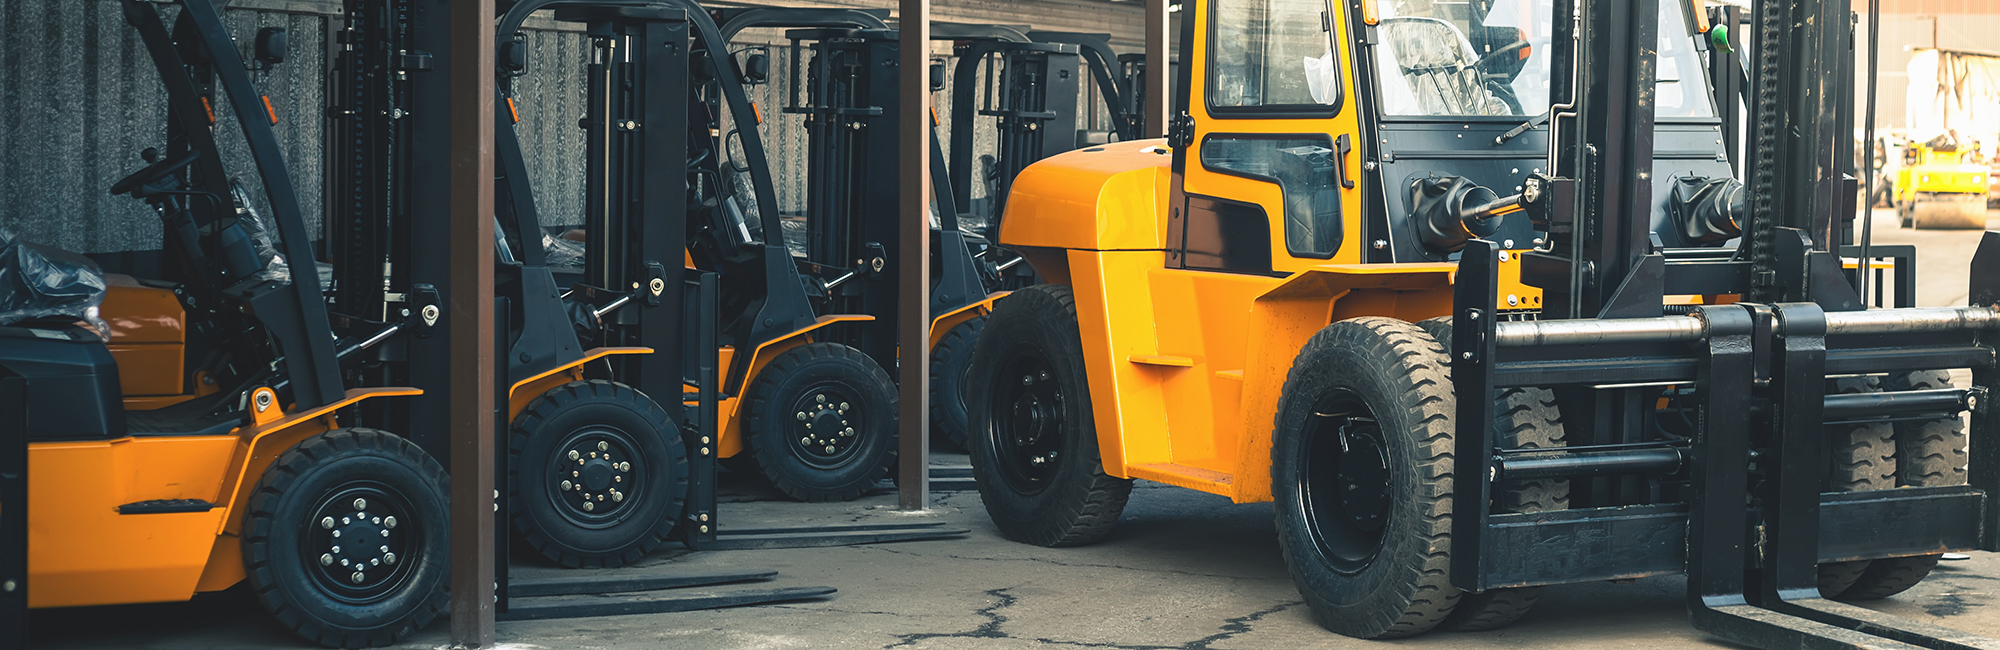 Yellow forklift trucks lined up in a yard with heavy handler in front